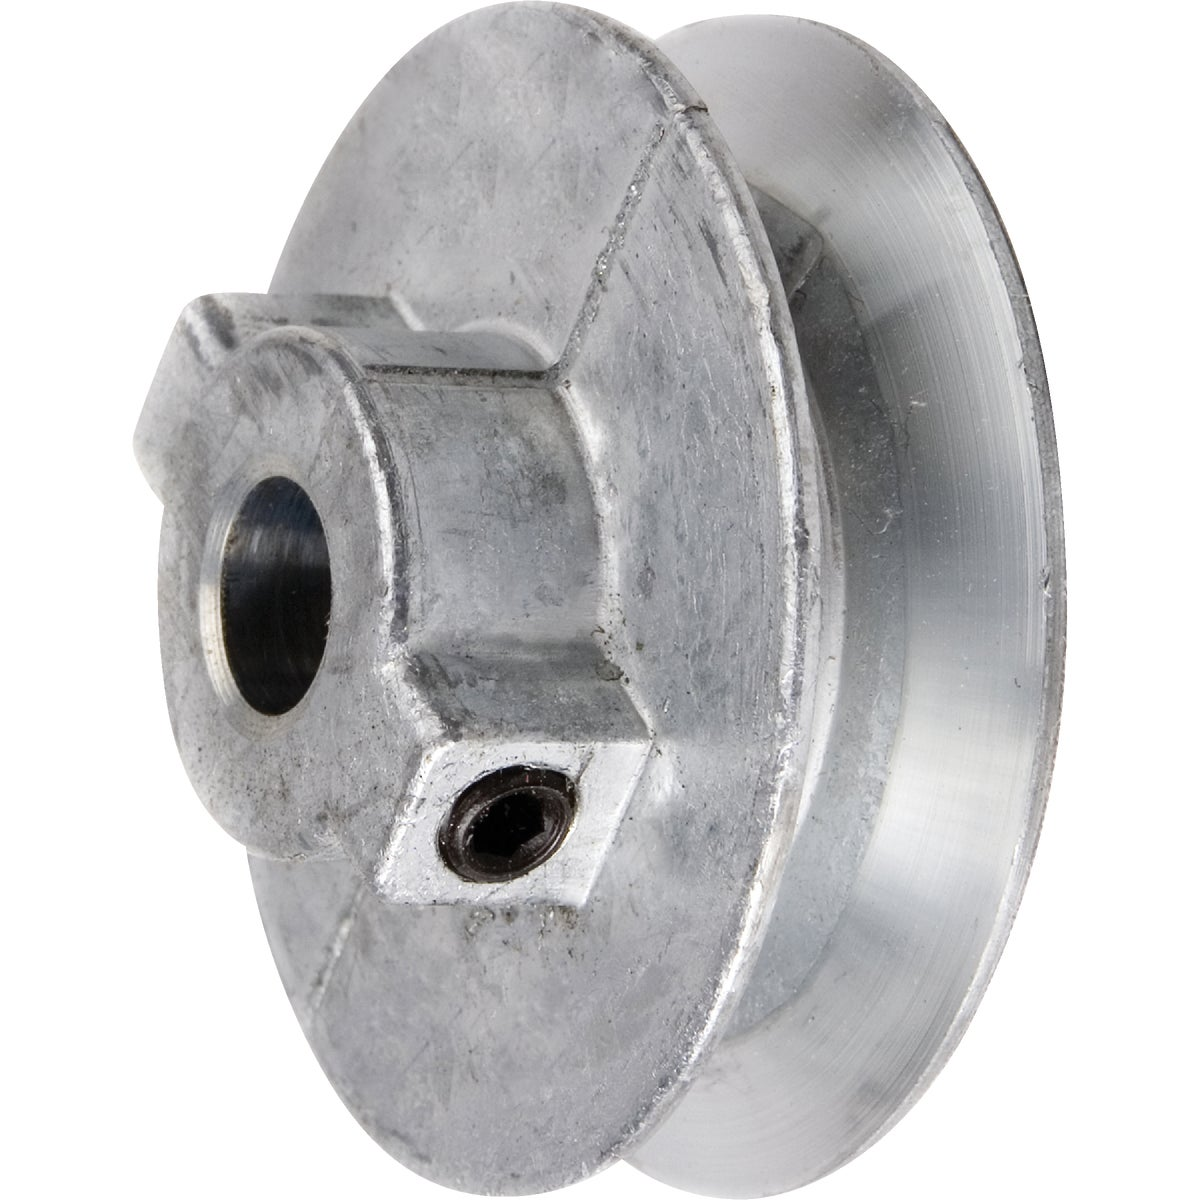 4-1/2X5/8 PULLEY